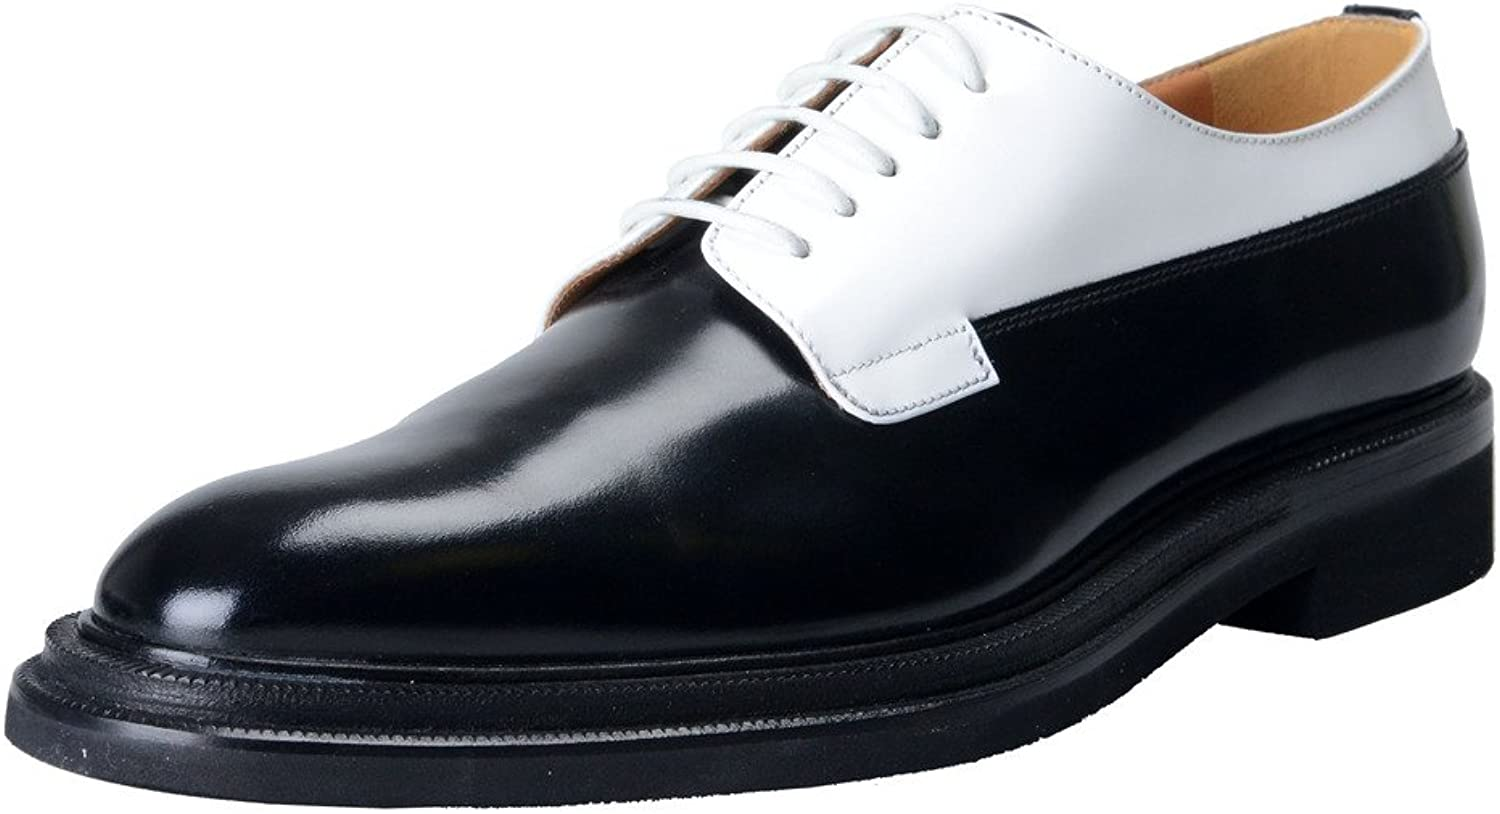 Church's English shoes Women's Polished Leather Oxfords shoes